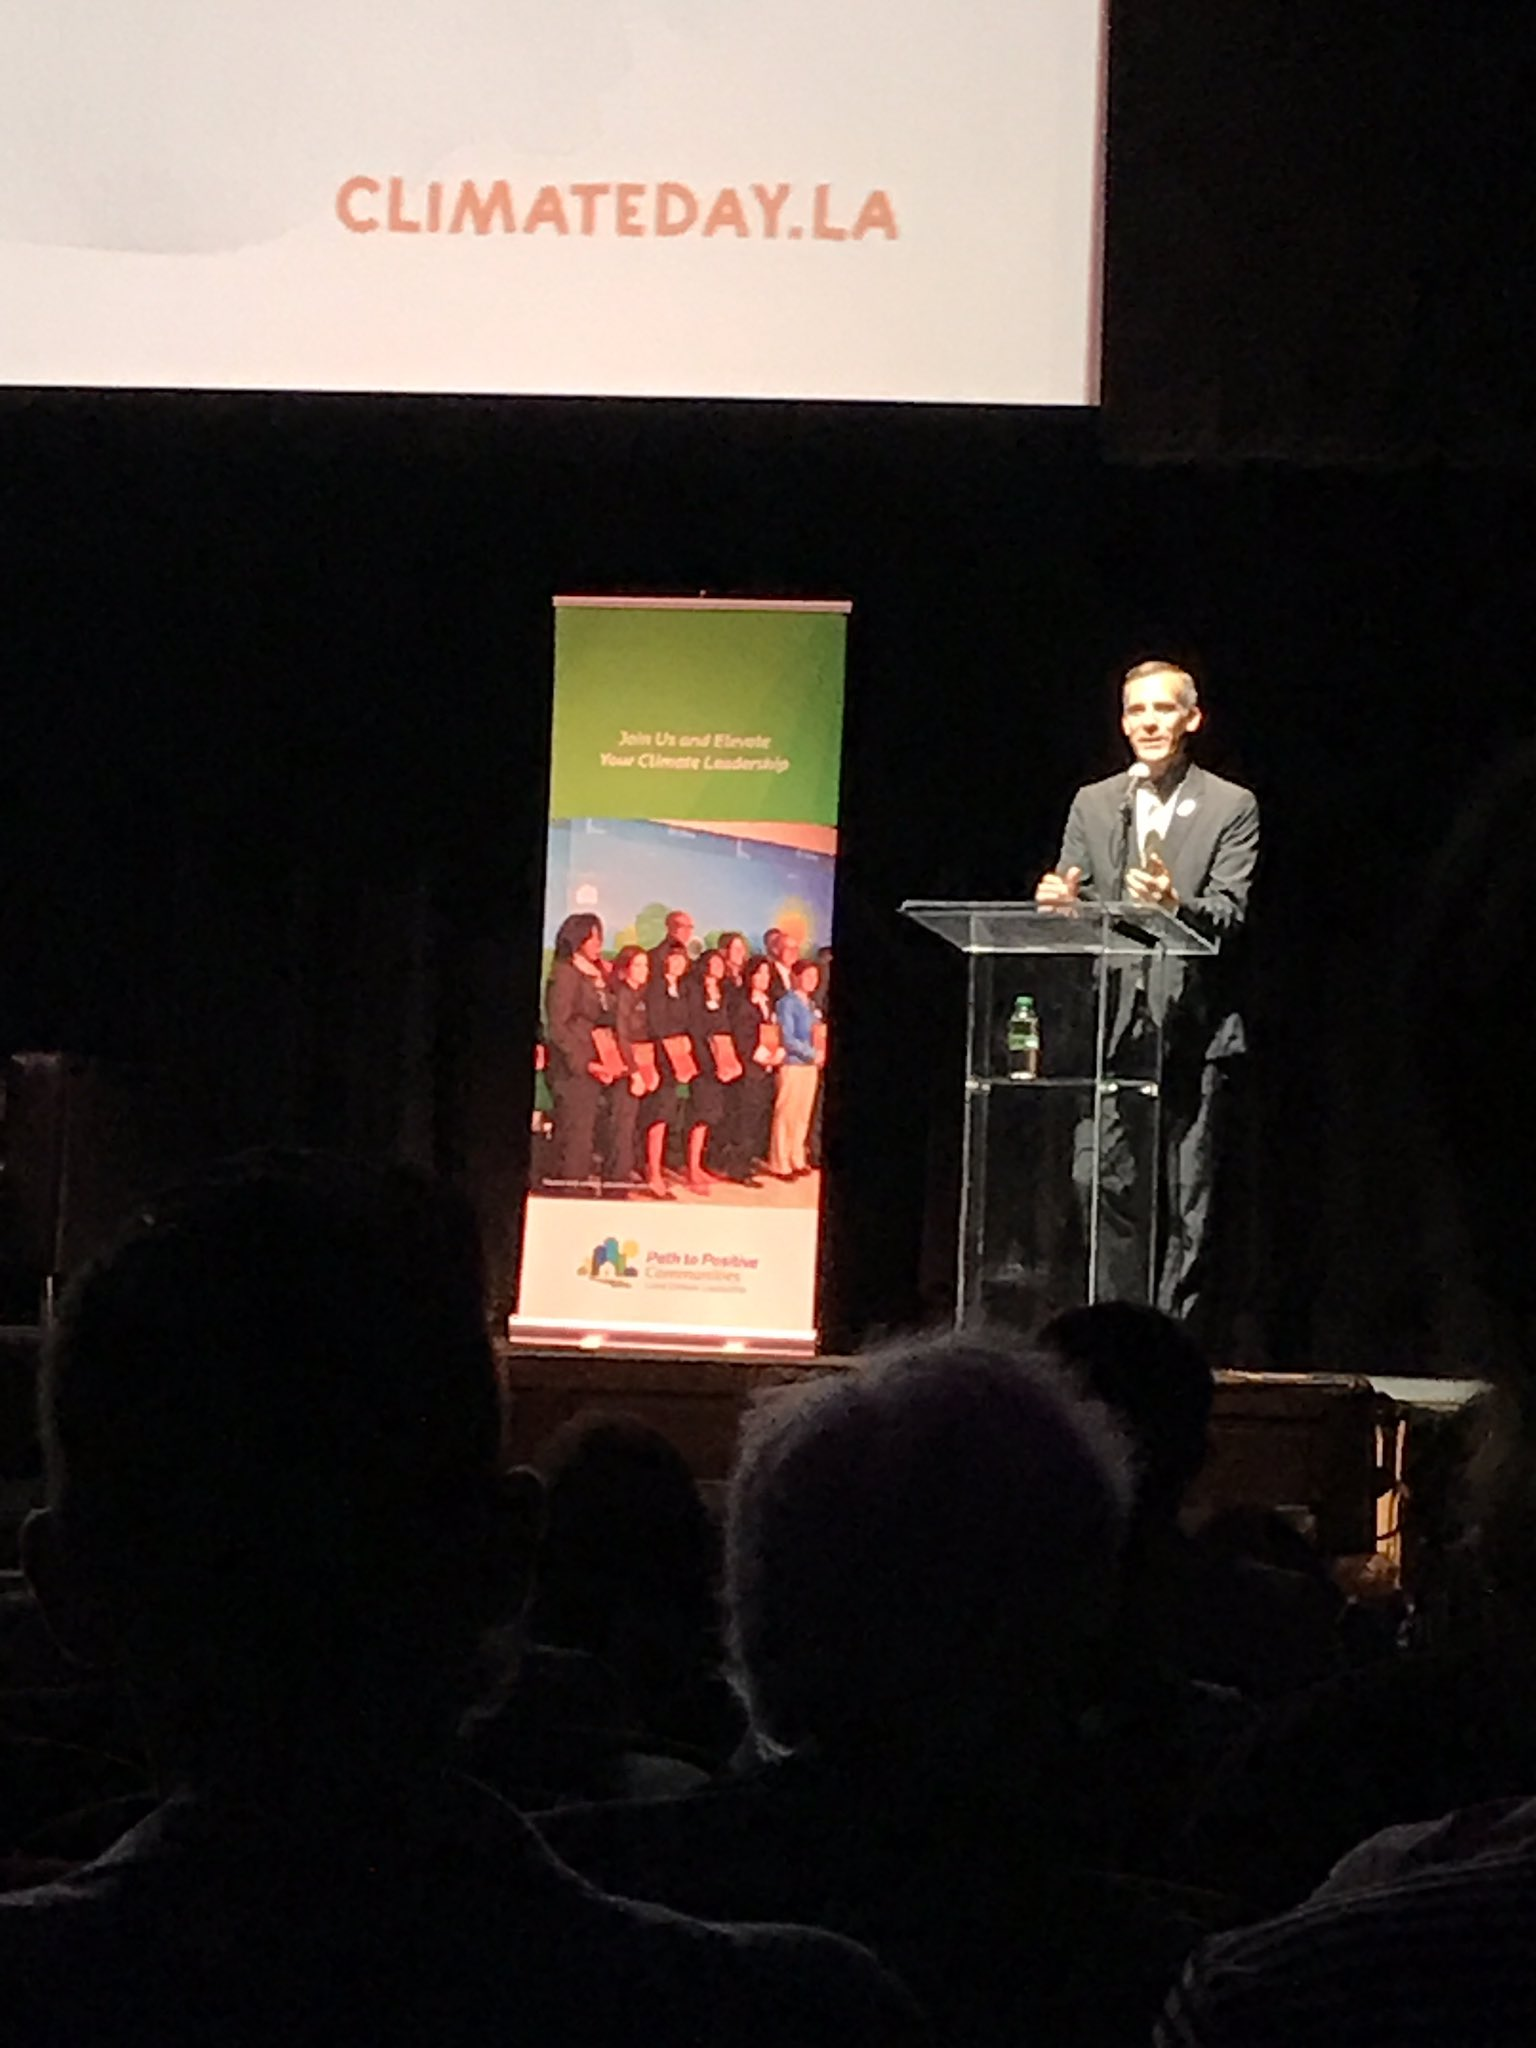 """Today is not only the day of words but day of action, not looking back at history but making history."" @MayorOfLA #ClimateDayLA https://t.co/2S3F8EuMm1"